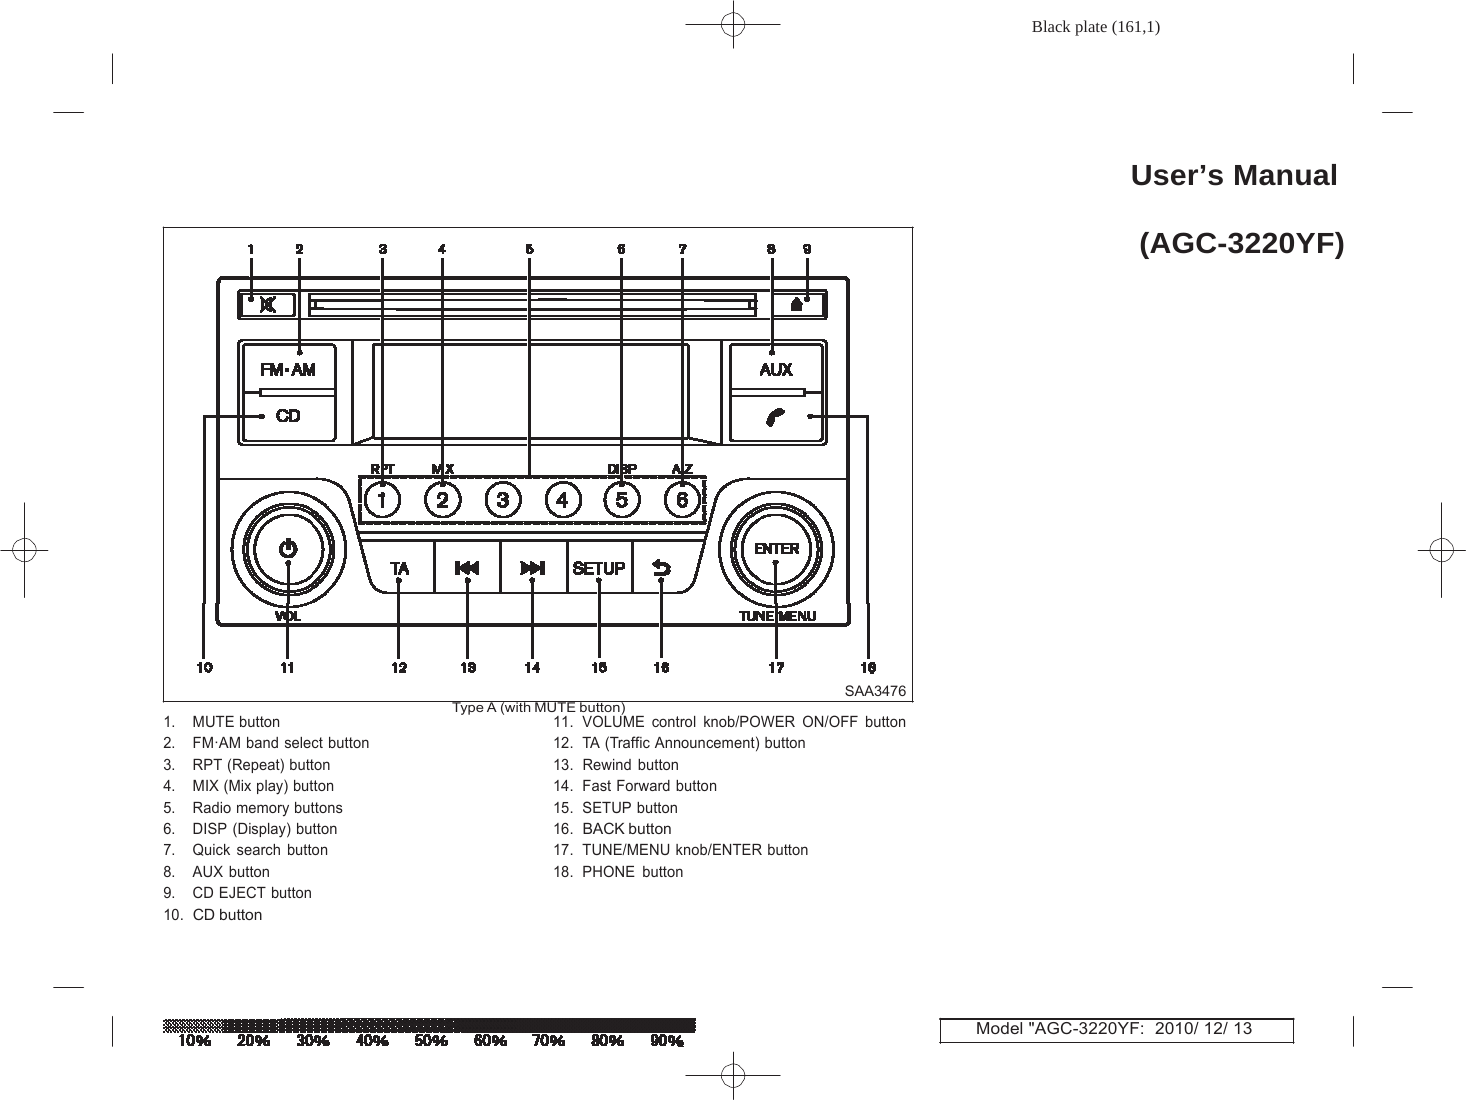 Humax Agc Yf Car Audio User Manual Agc Yf Revx